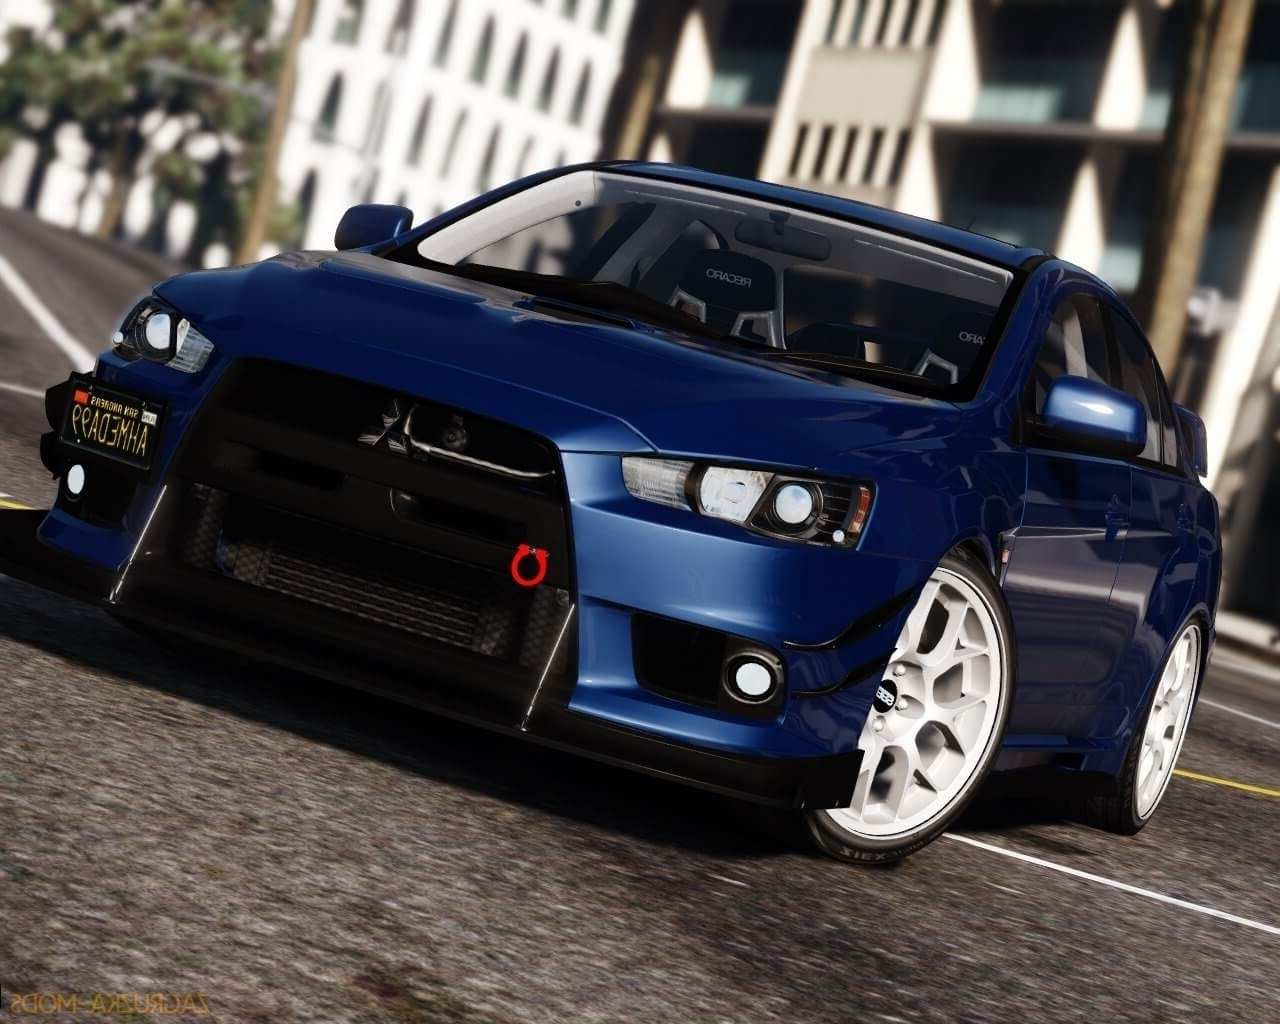 97 The Best 2020 Mitsubishi Lancer Prices